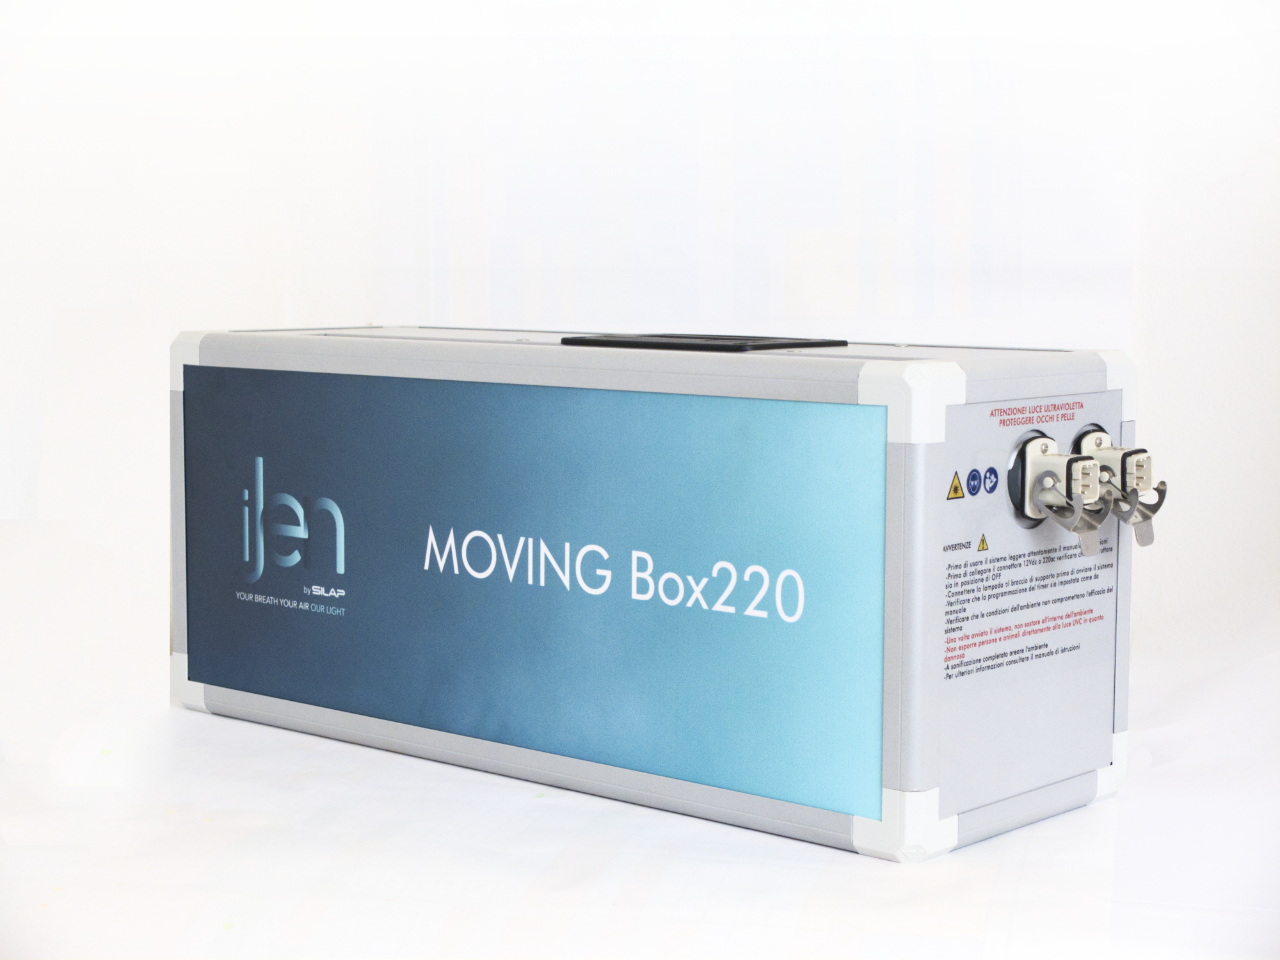 iJen-MOVING-Box220-003